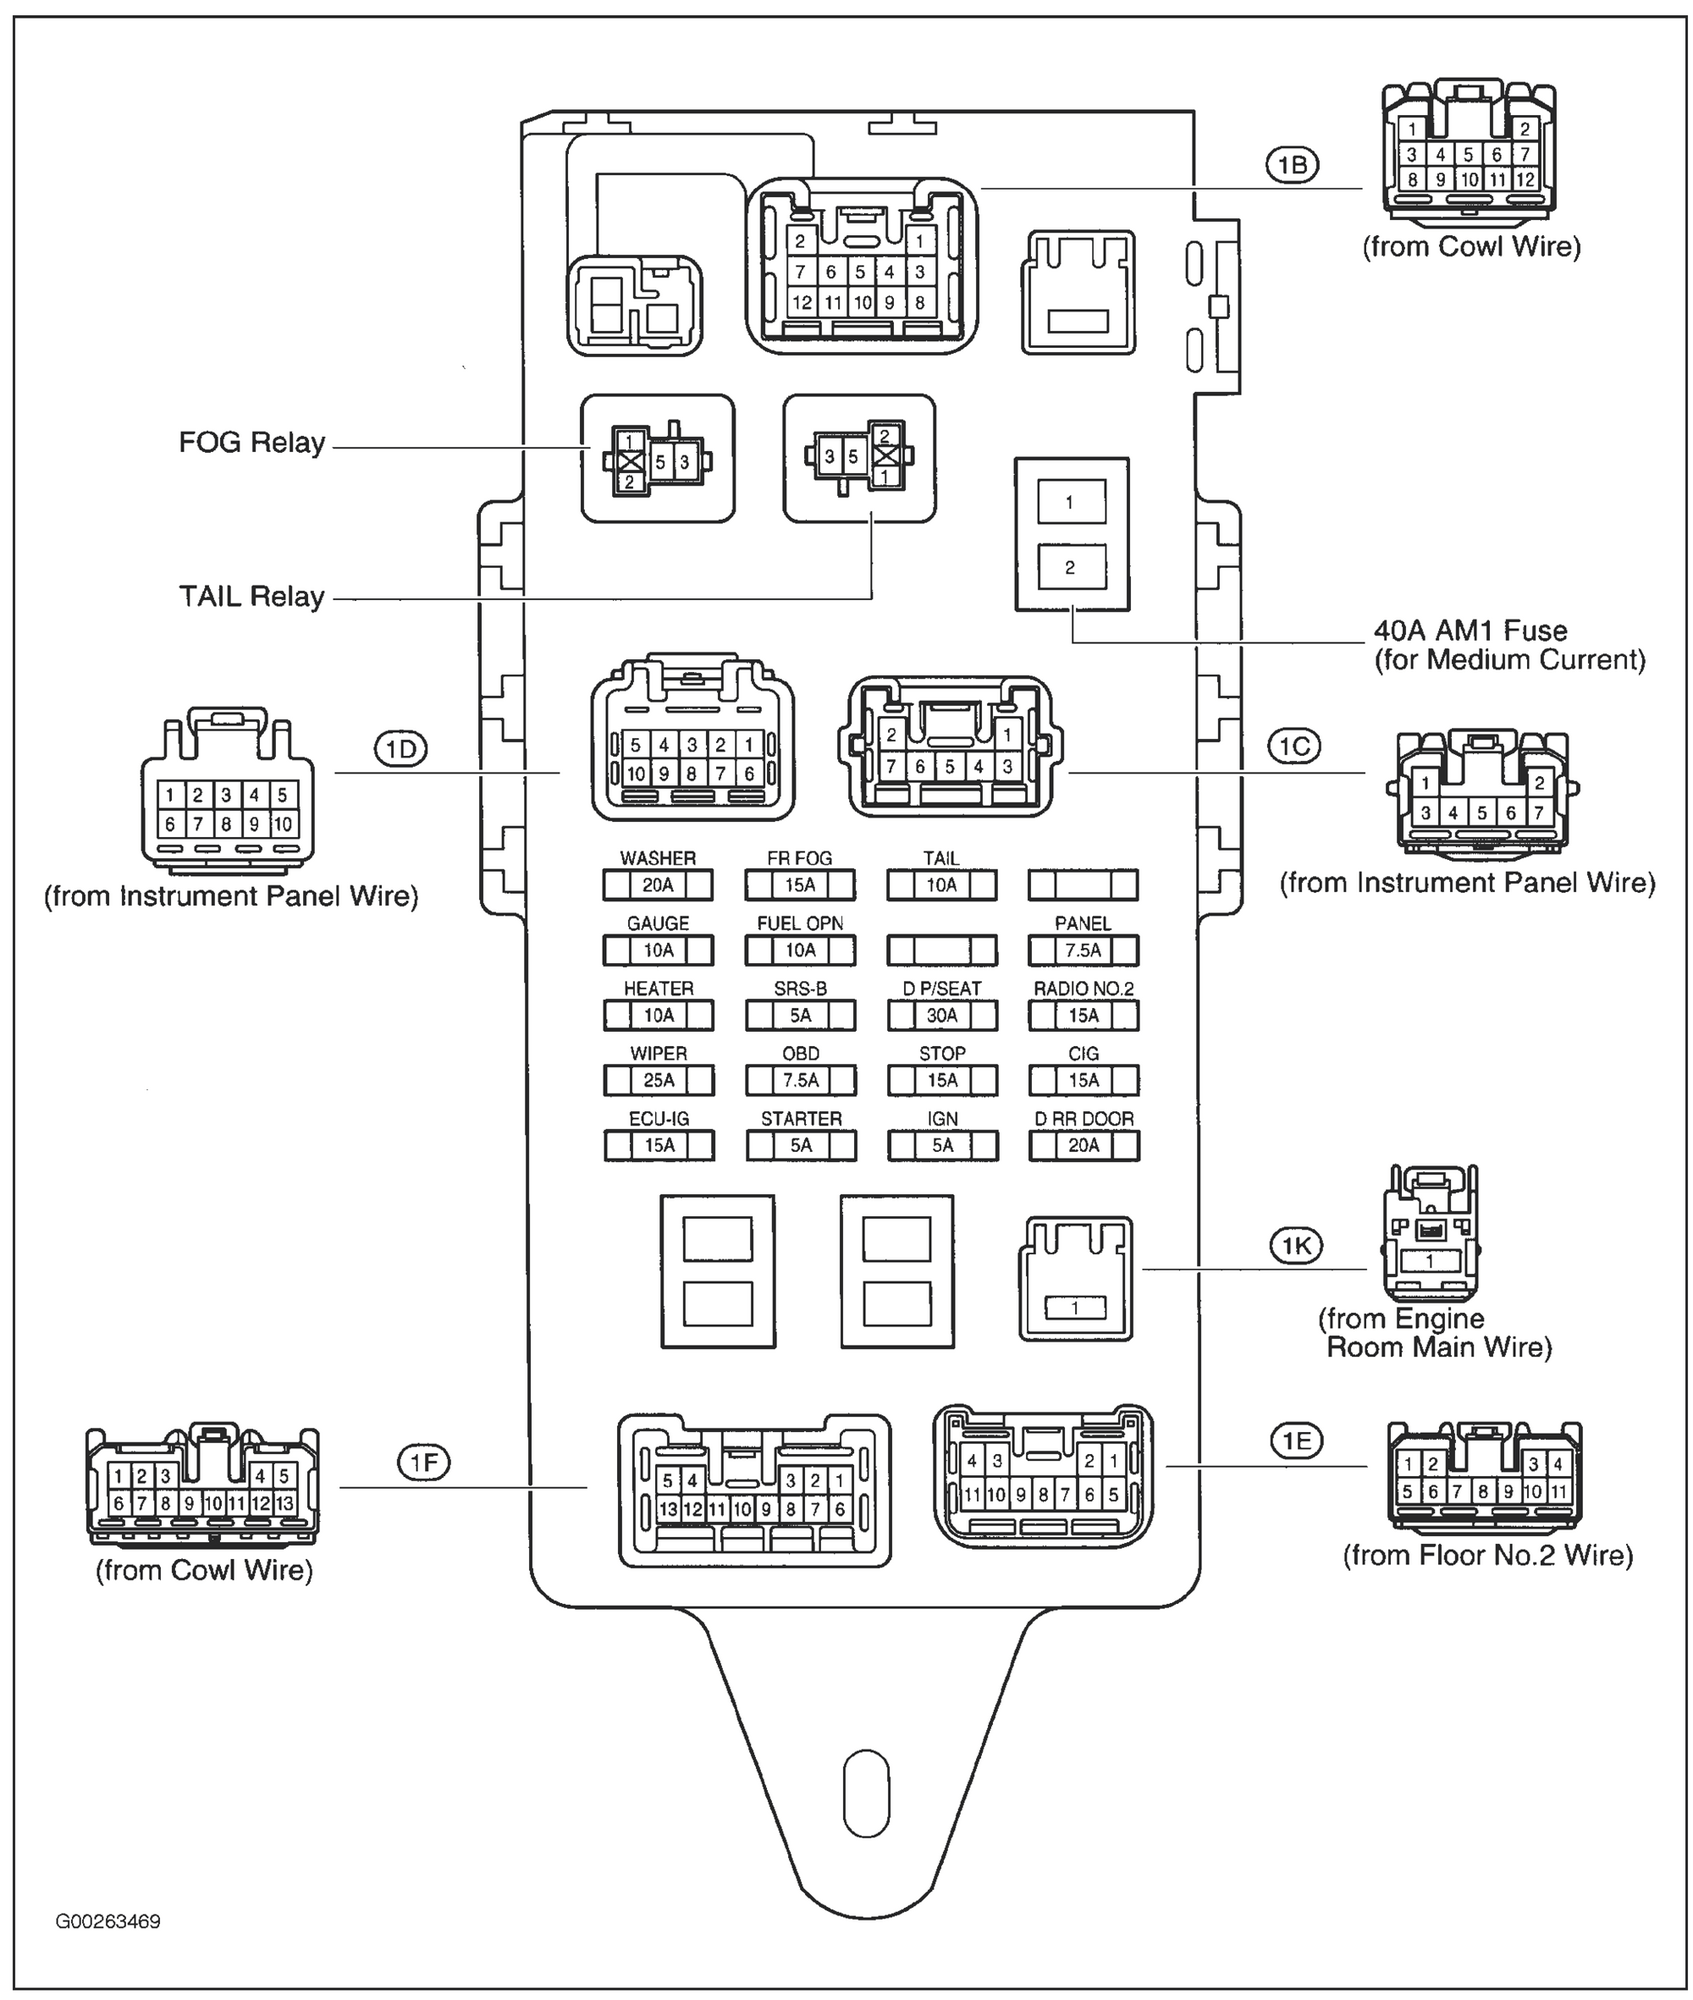 hight resolution of fuse diagram for 1993 lexus ls400 free downloads wiring diagram 93 lexus es300 radio wiring diagram 1993 lexus es300 fuse diagram